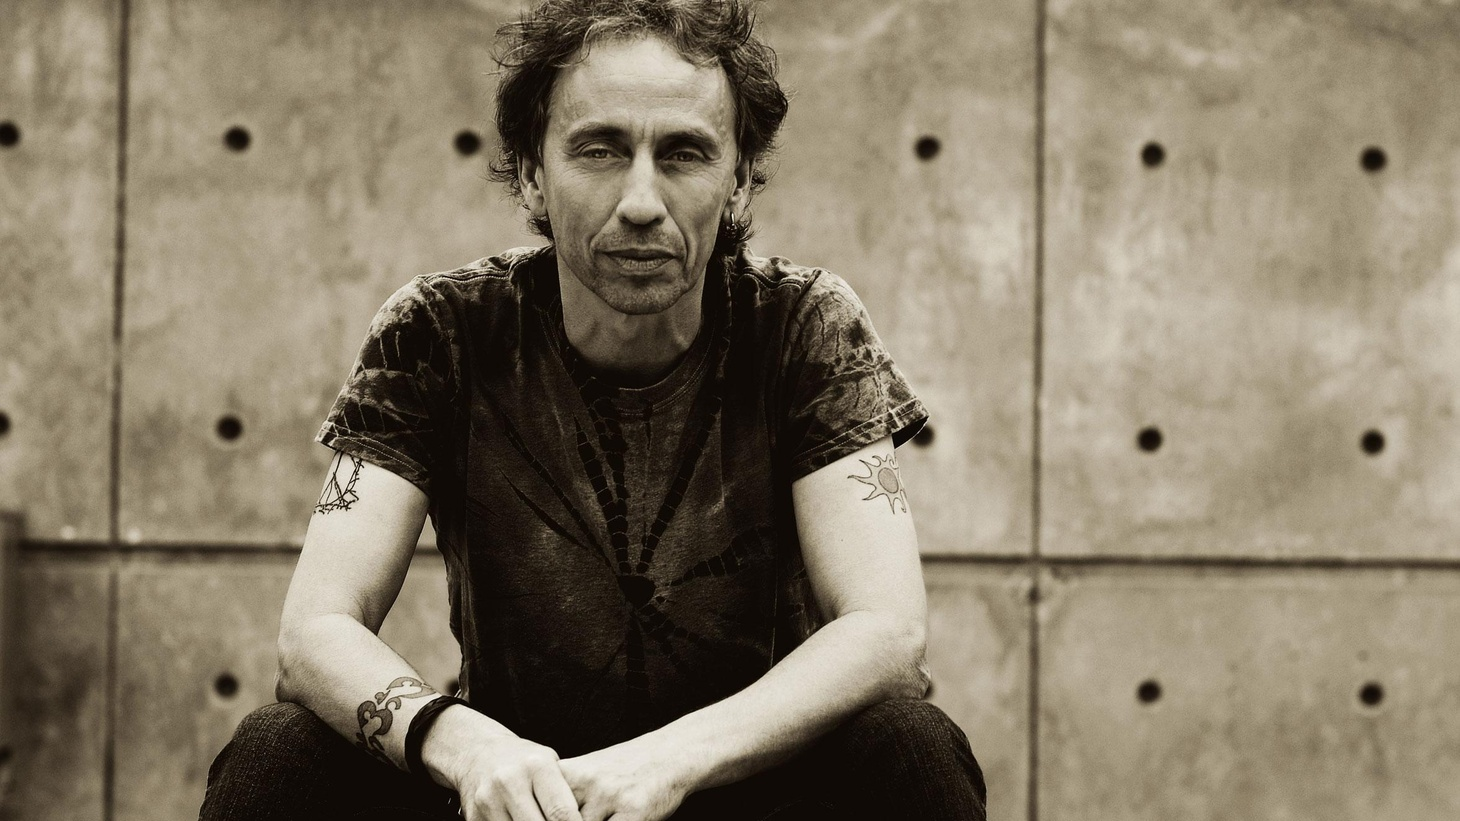 On the next edition of Sounds Eclectic, host Nic Harcourt plays new, upcoming and recent releases from Lisa Germano, The Waifs, and the latest from Yo La Tengo. Plus a live in-studio performance from Pete Yorn, all this and much more on the next Sounds Eclectic.